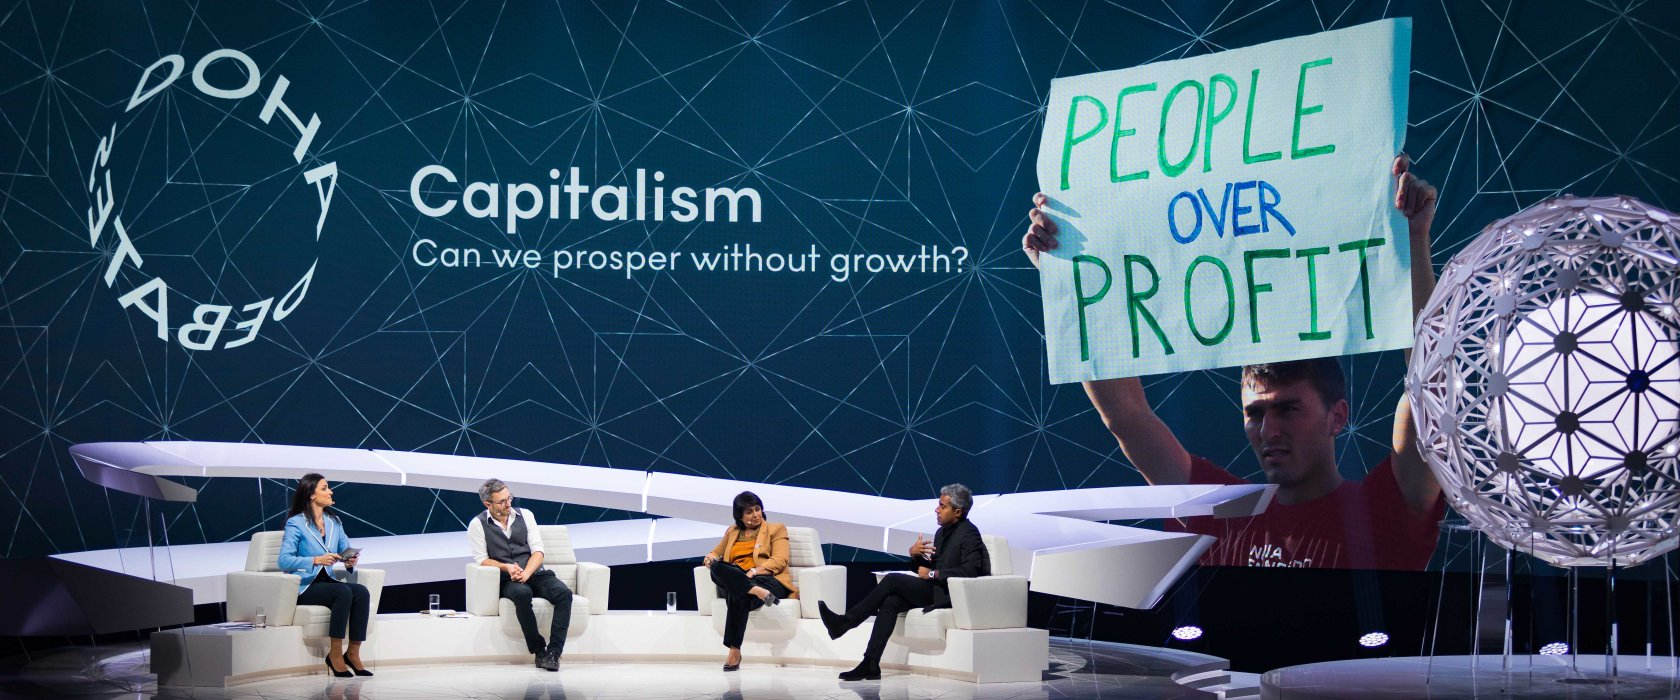 Capitalism is broken and only people power can fix it, Doha Debates audience told